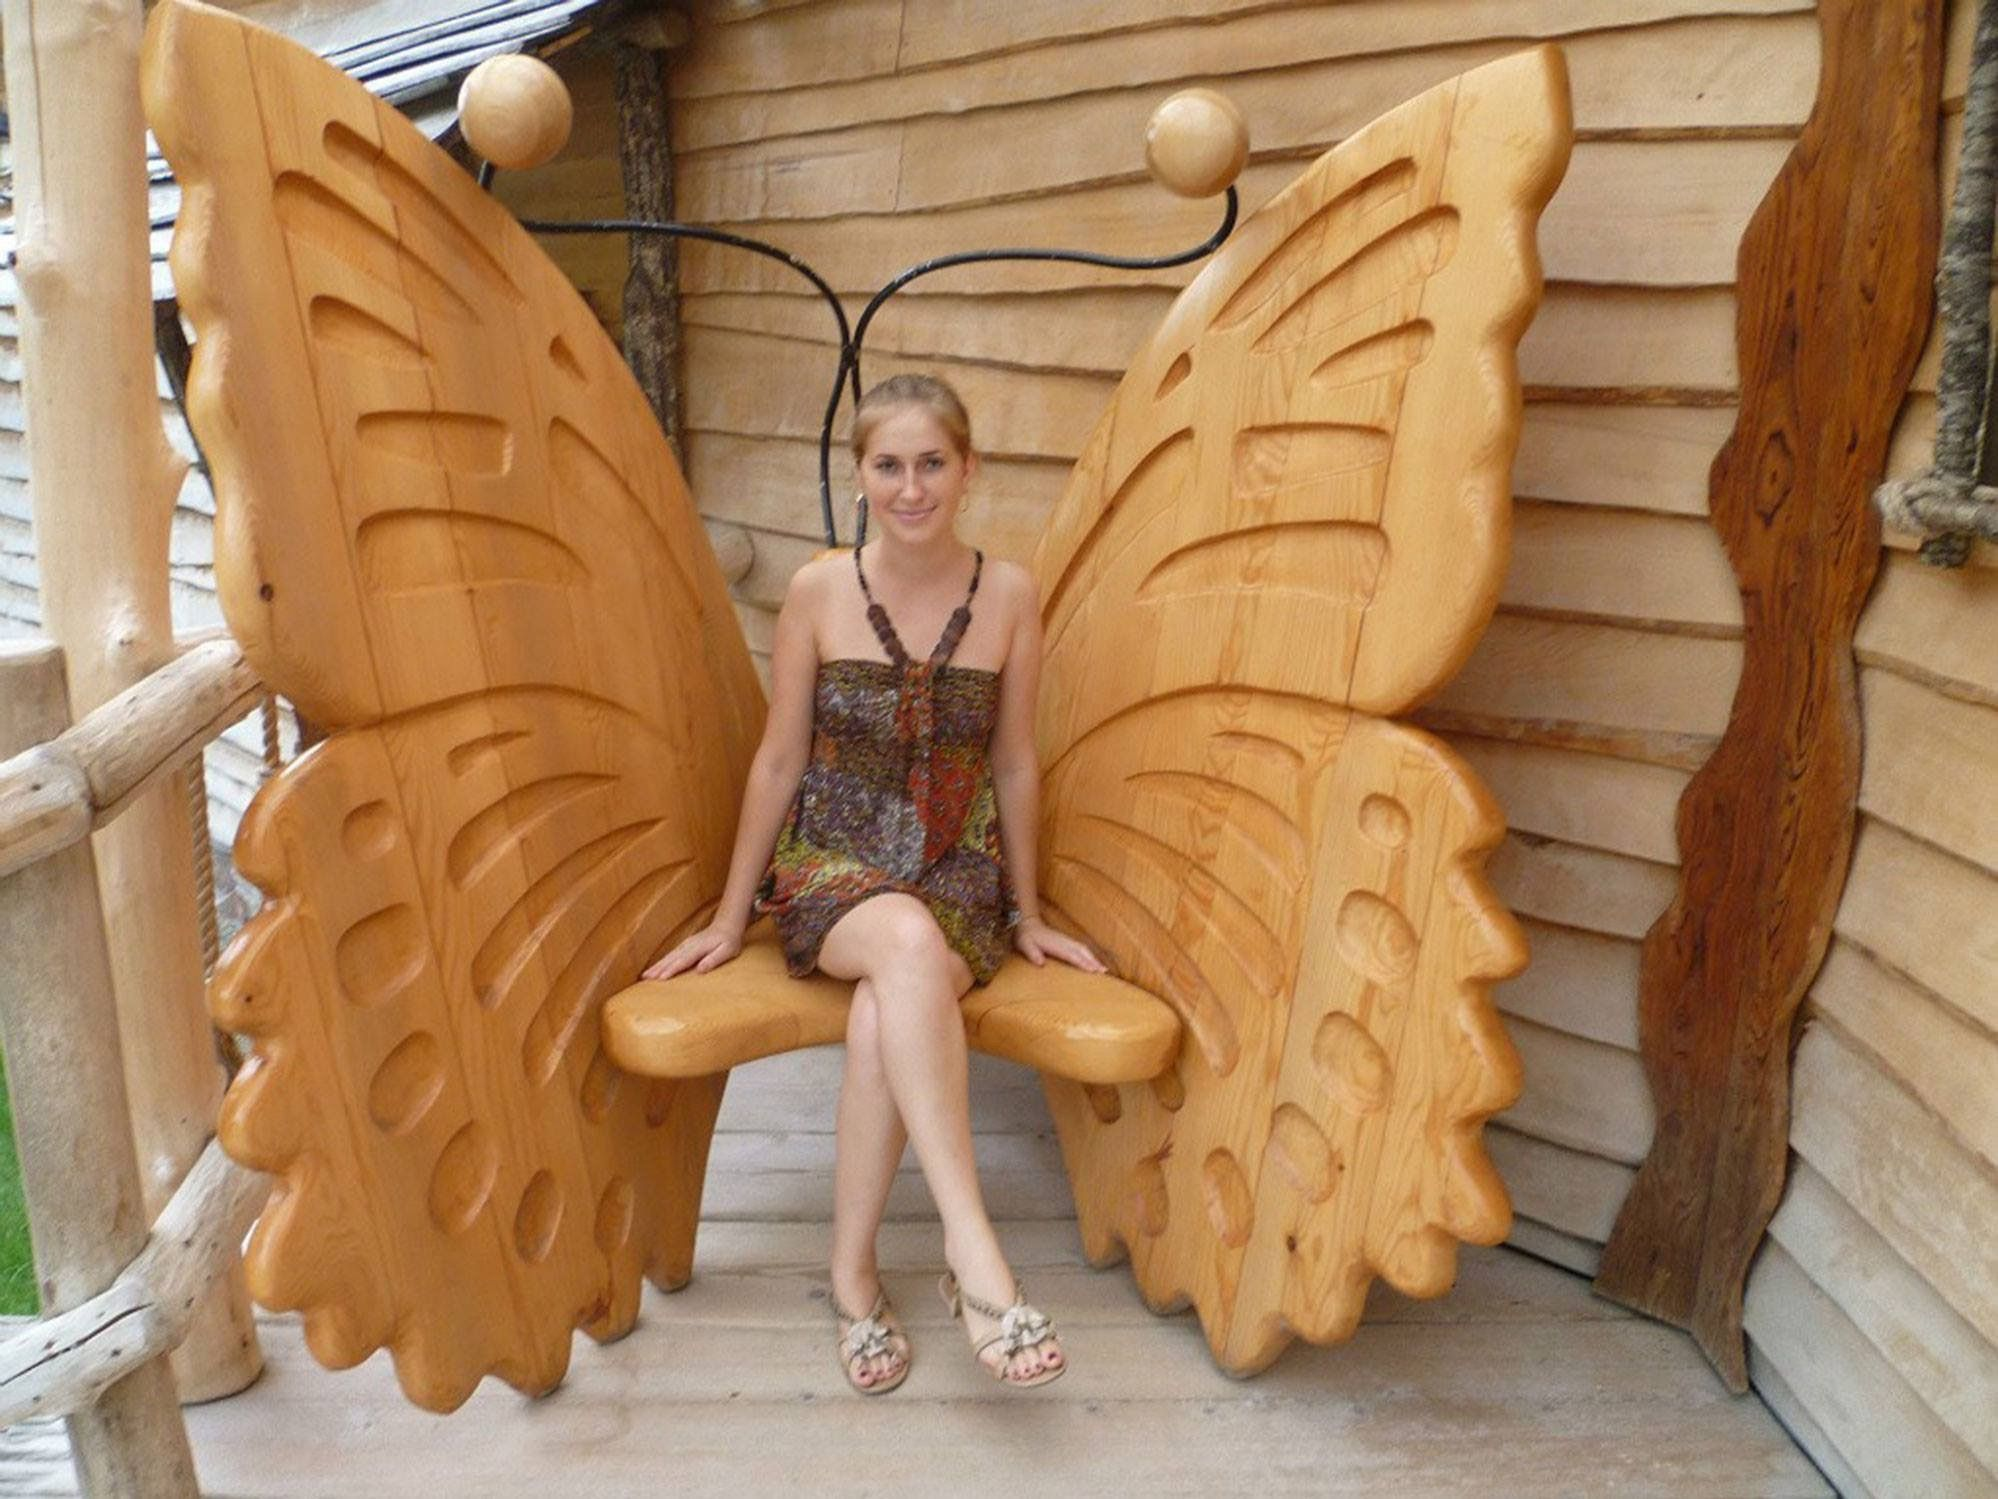 Carved wooden butterfly chair   DIY Home Projects ...